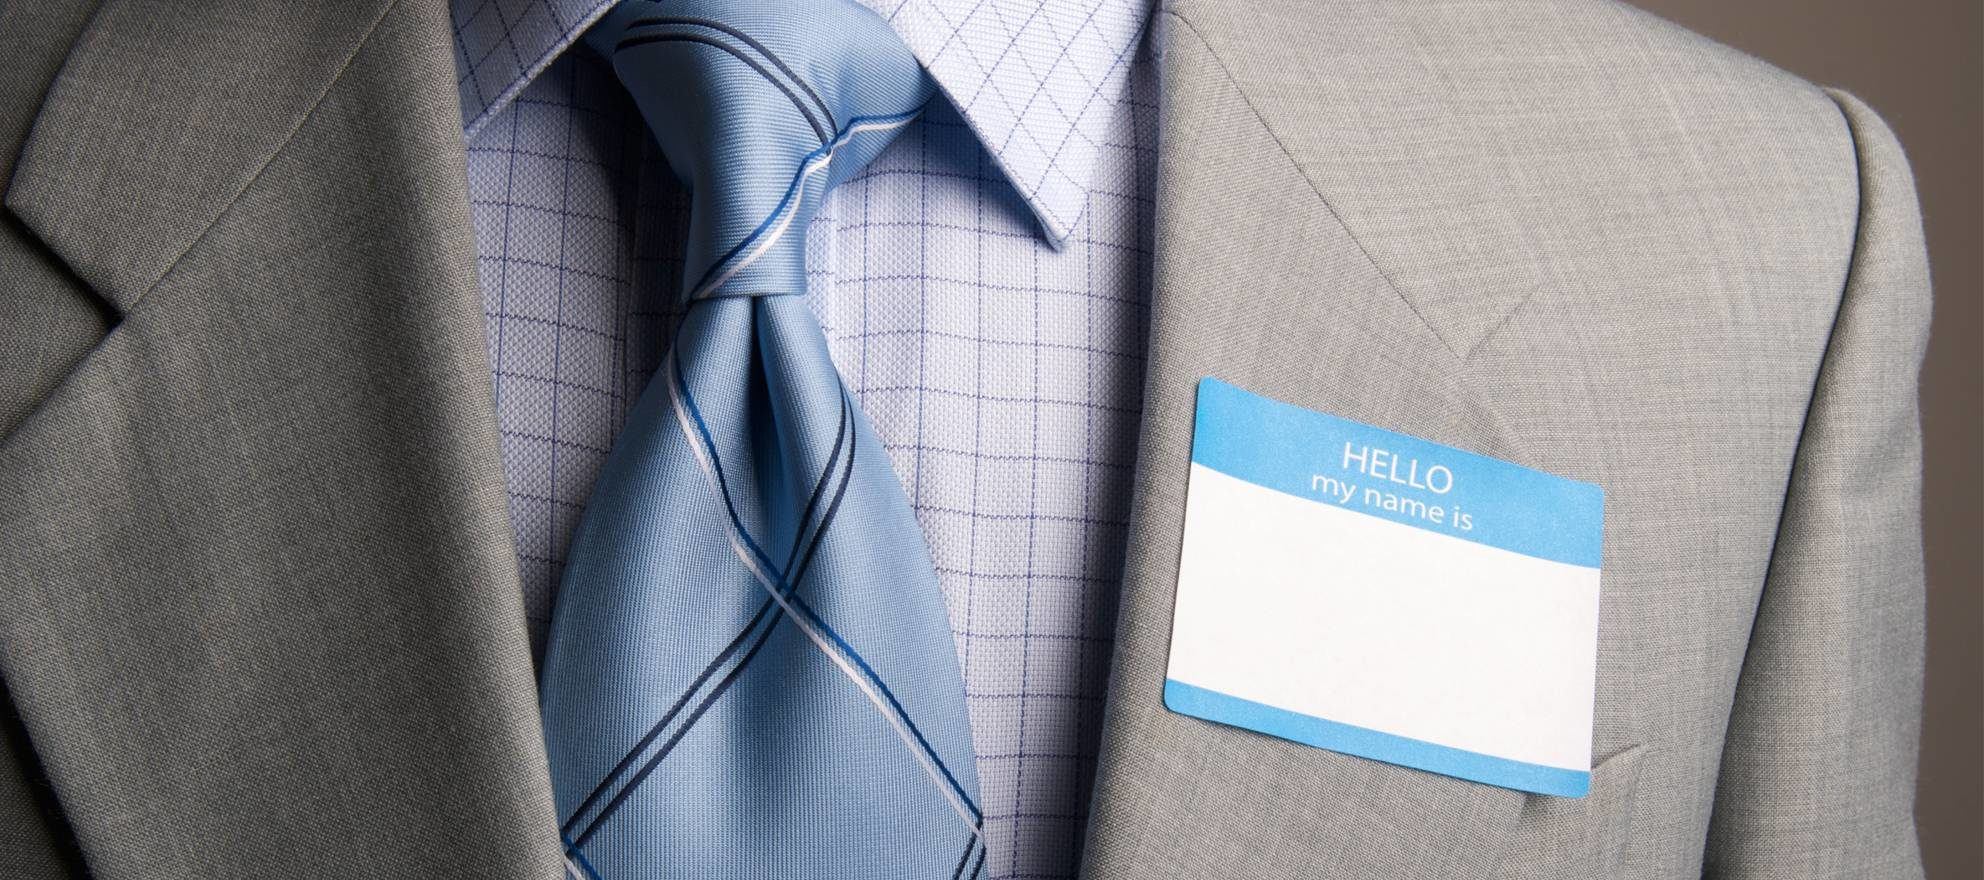 Should agents wear name tags?